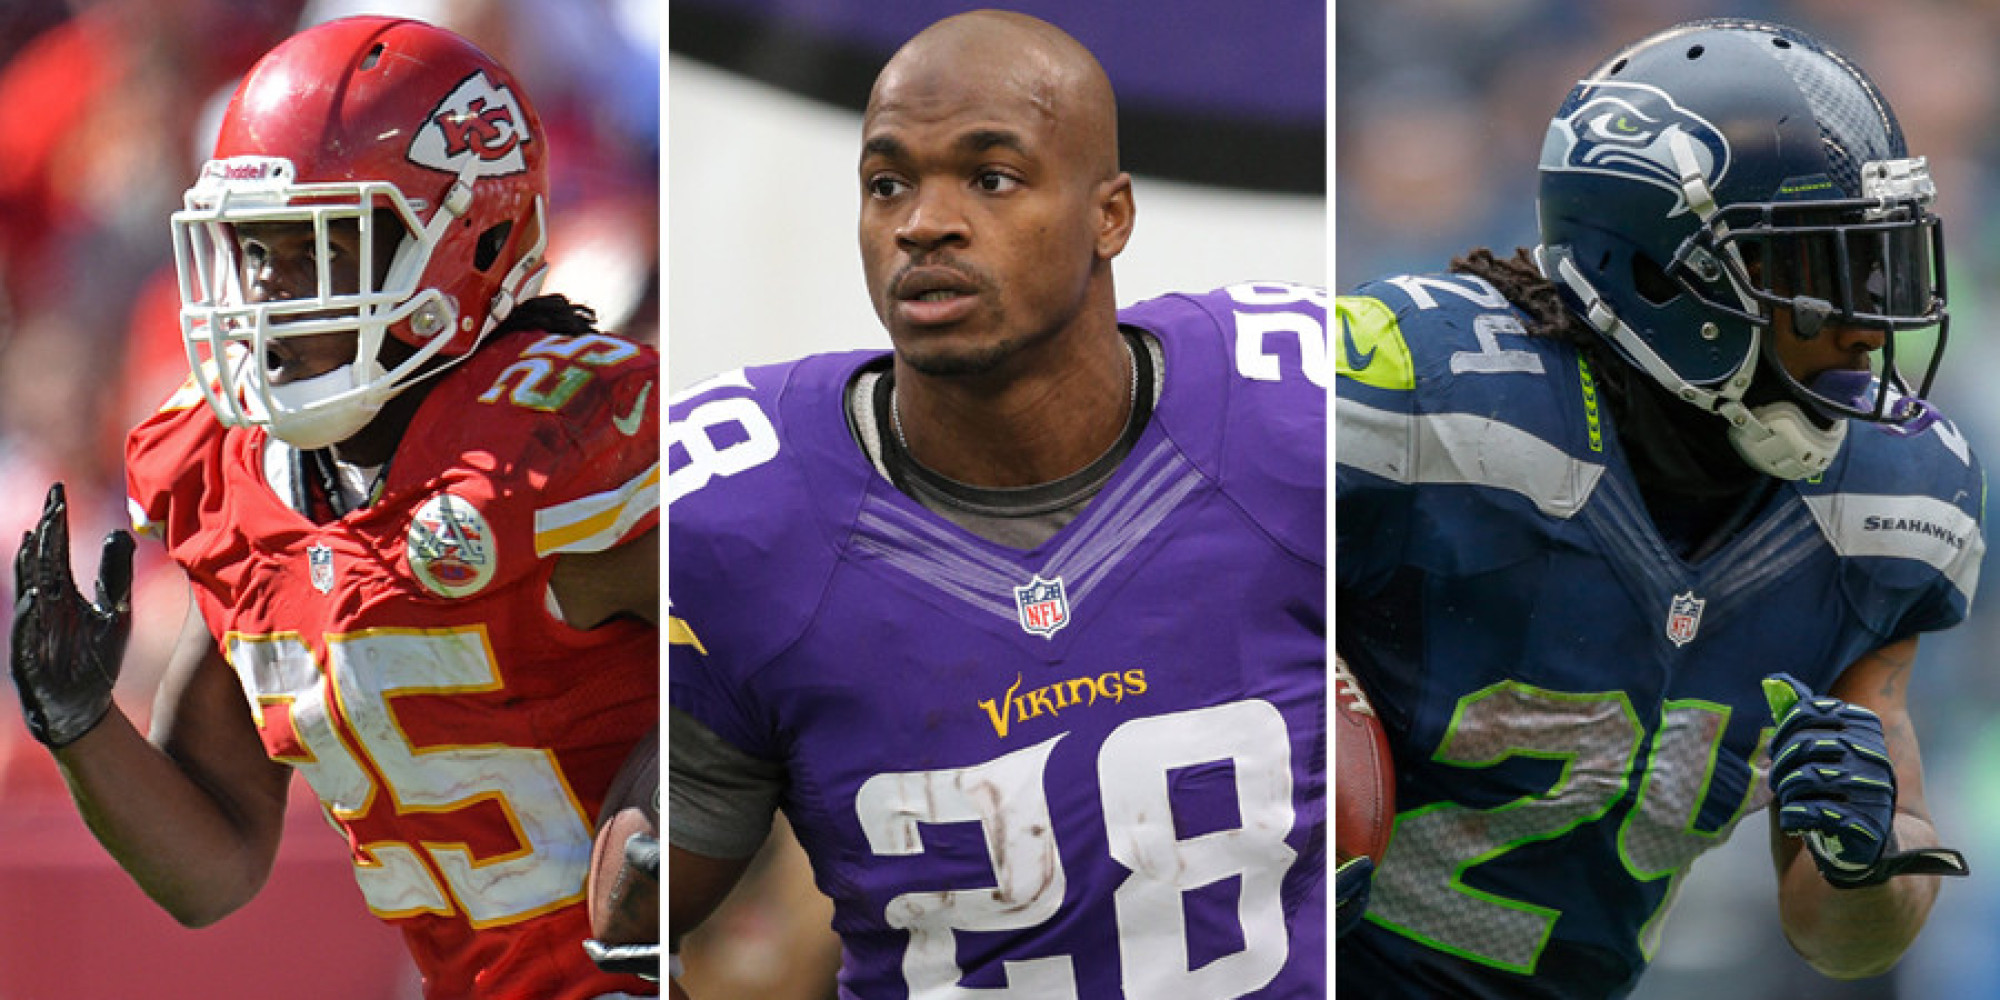 506 nfl who is the best running back in the nfl